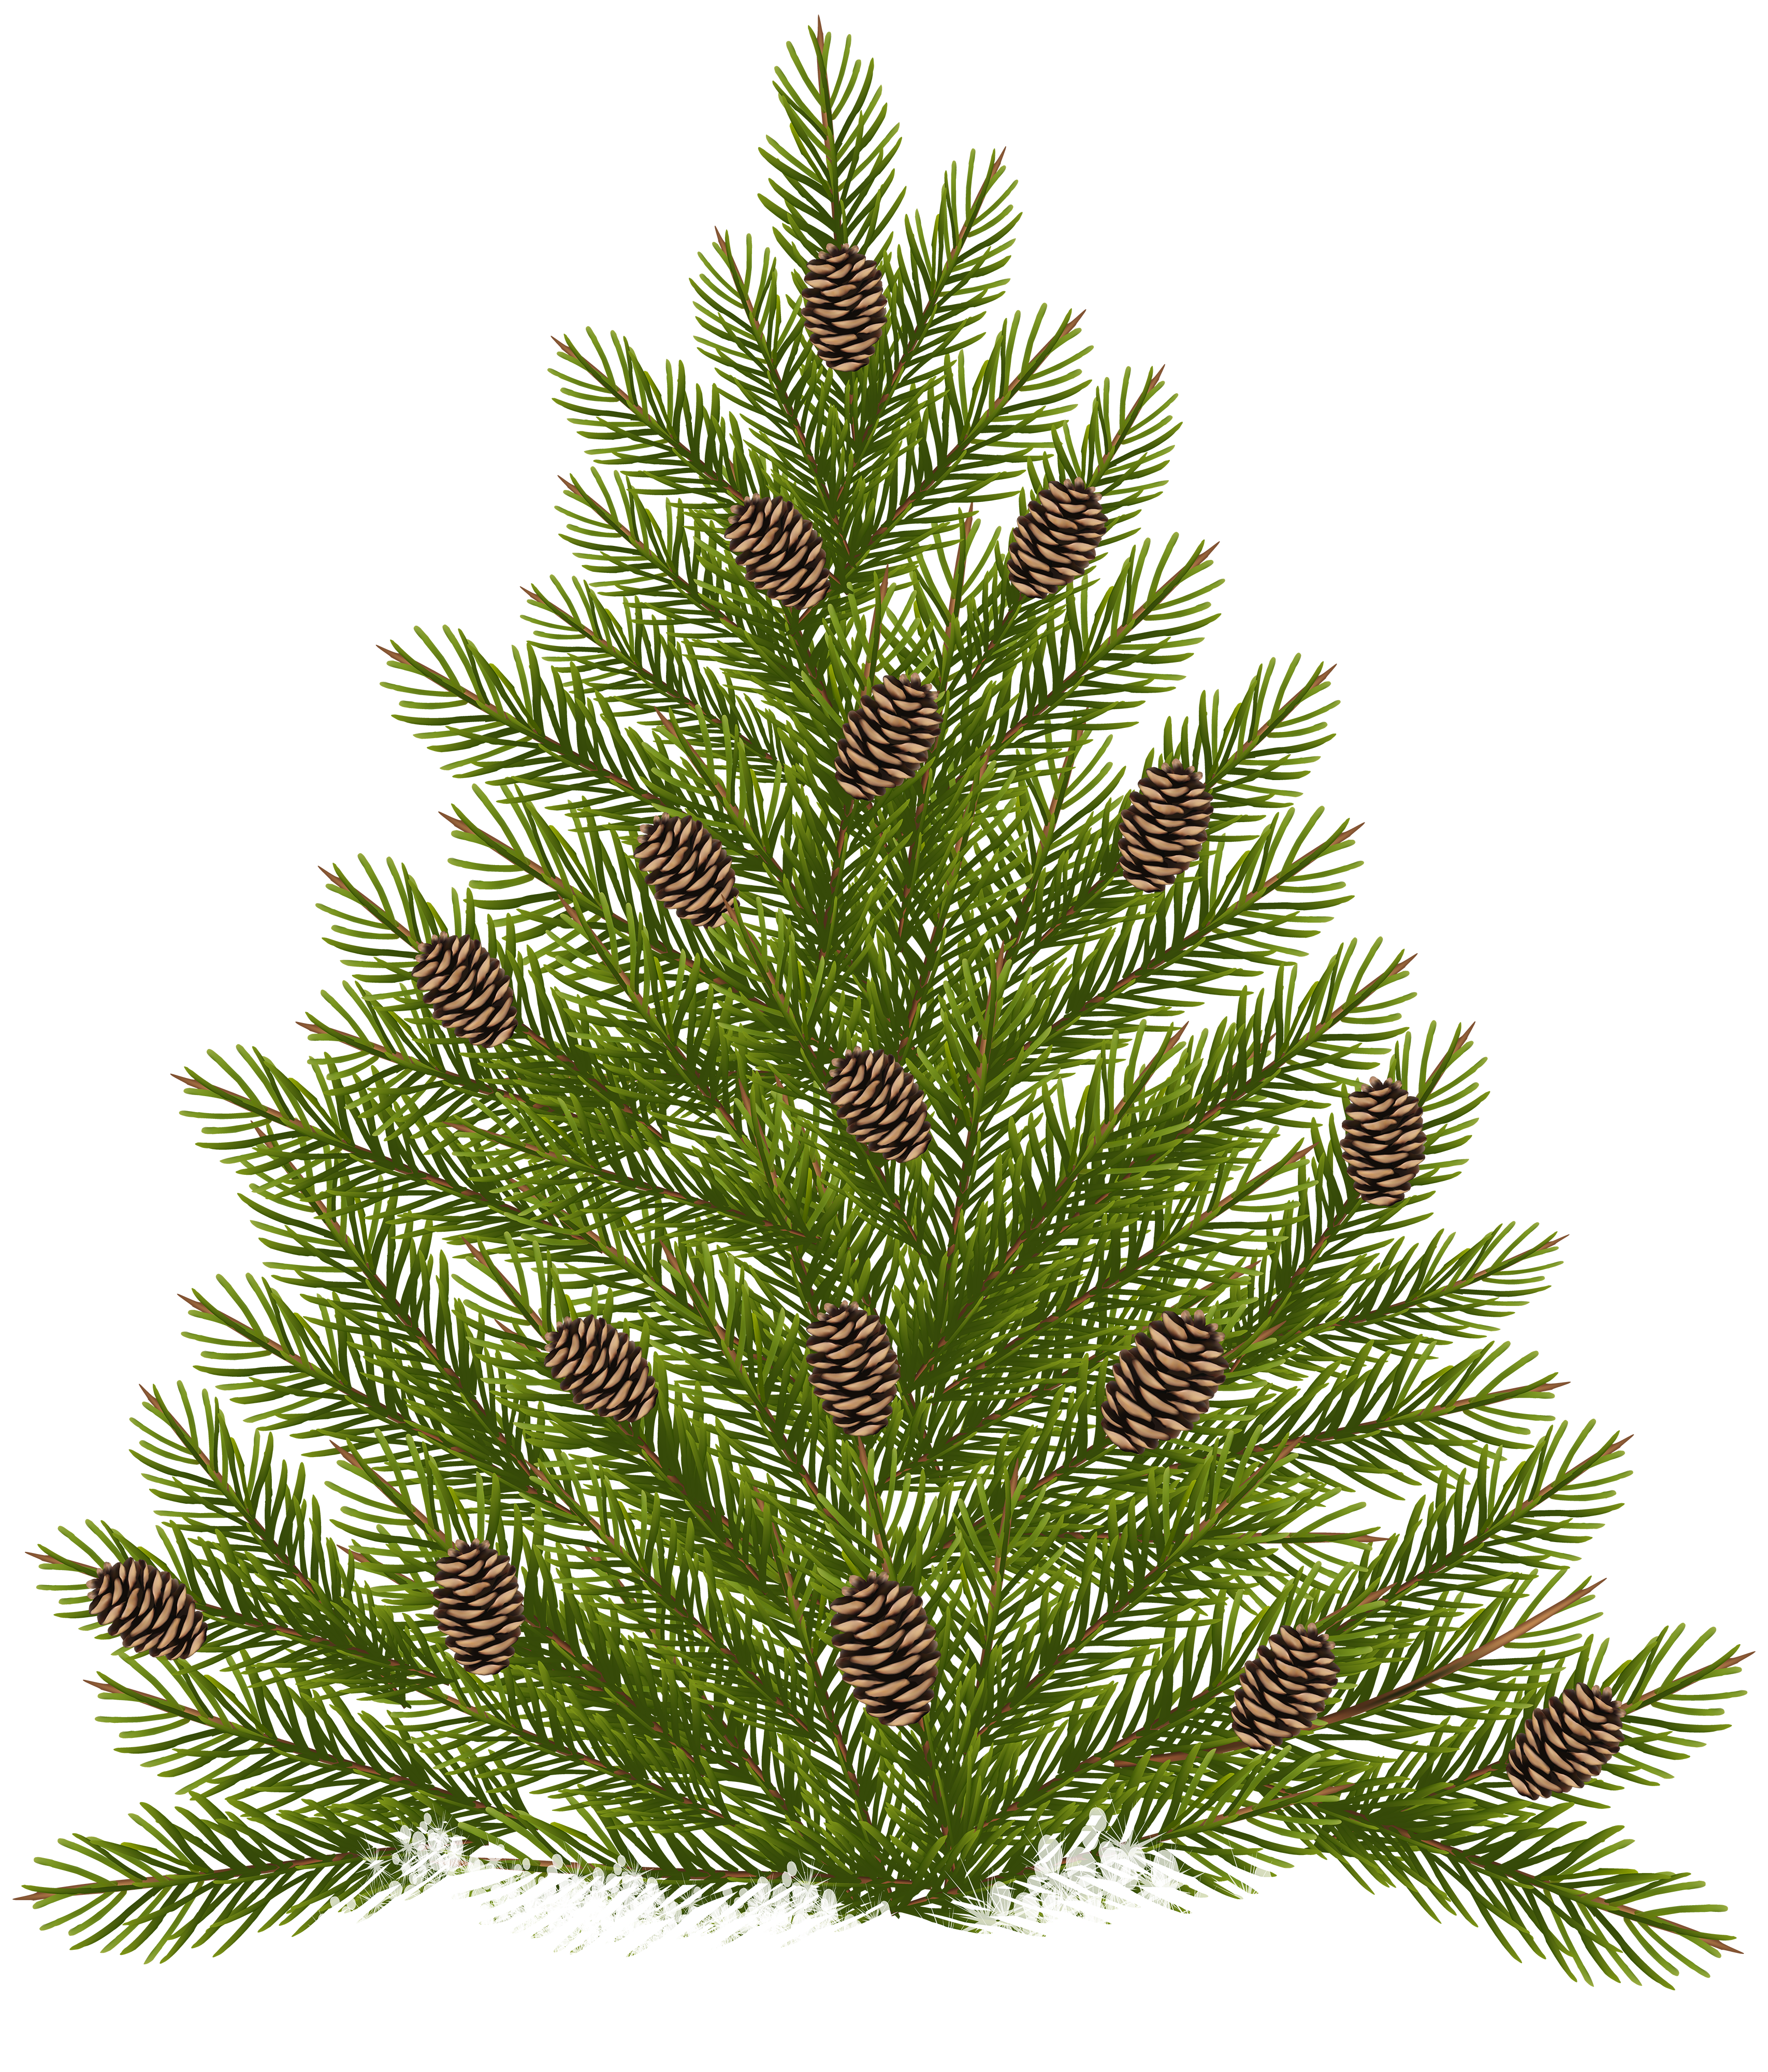 Pine Tree with Cones Transparent PNG Clip Art.